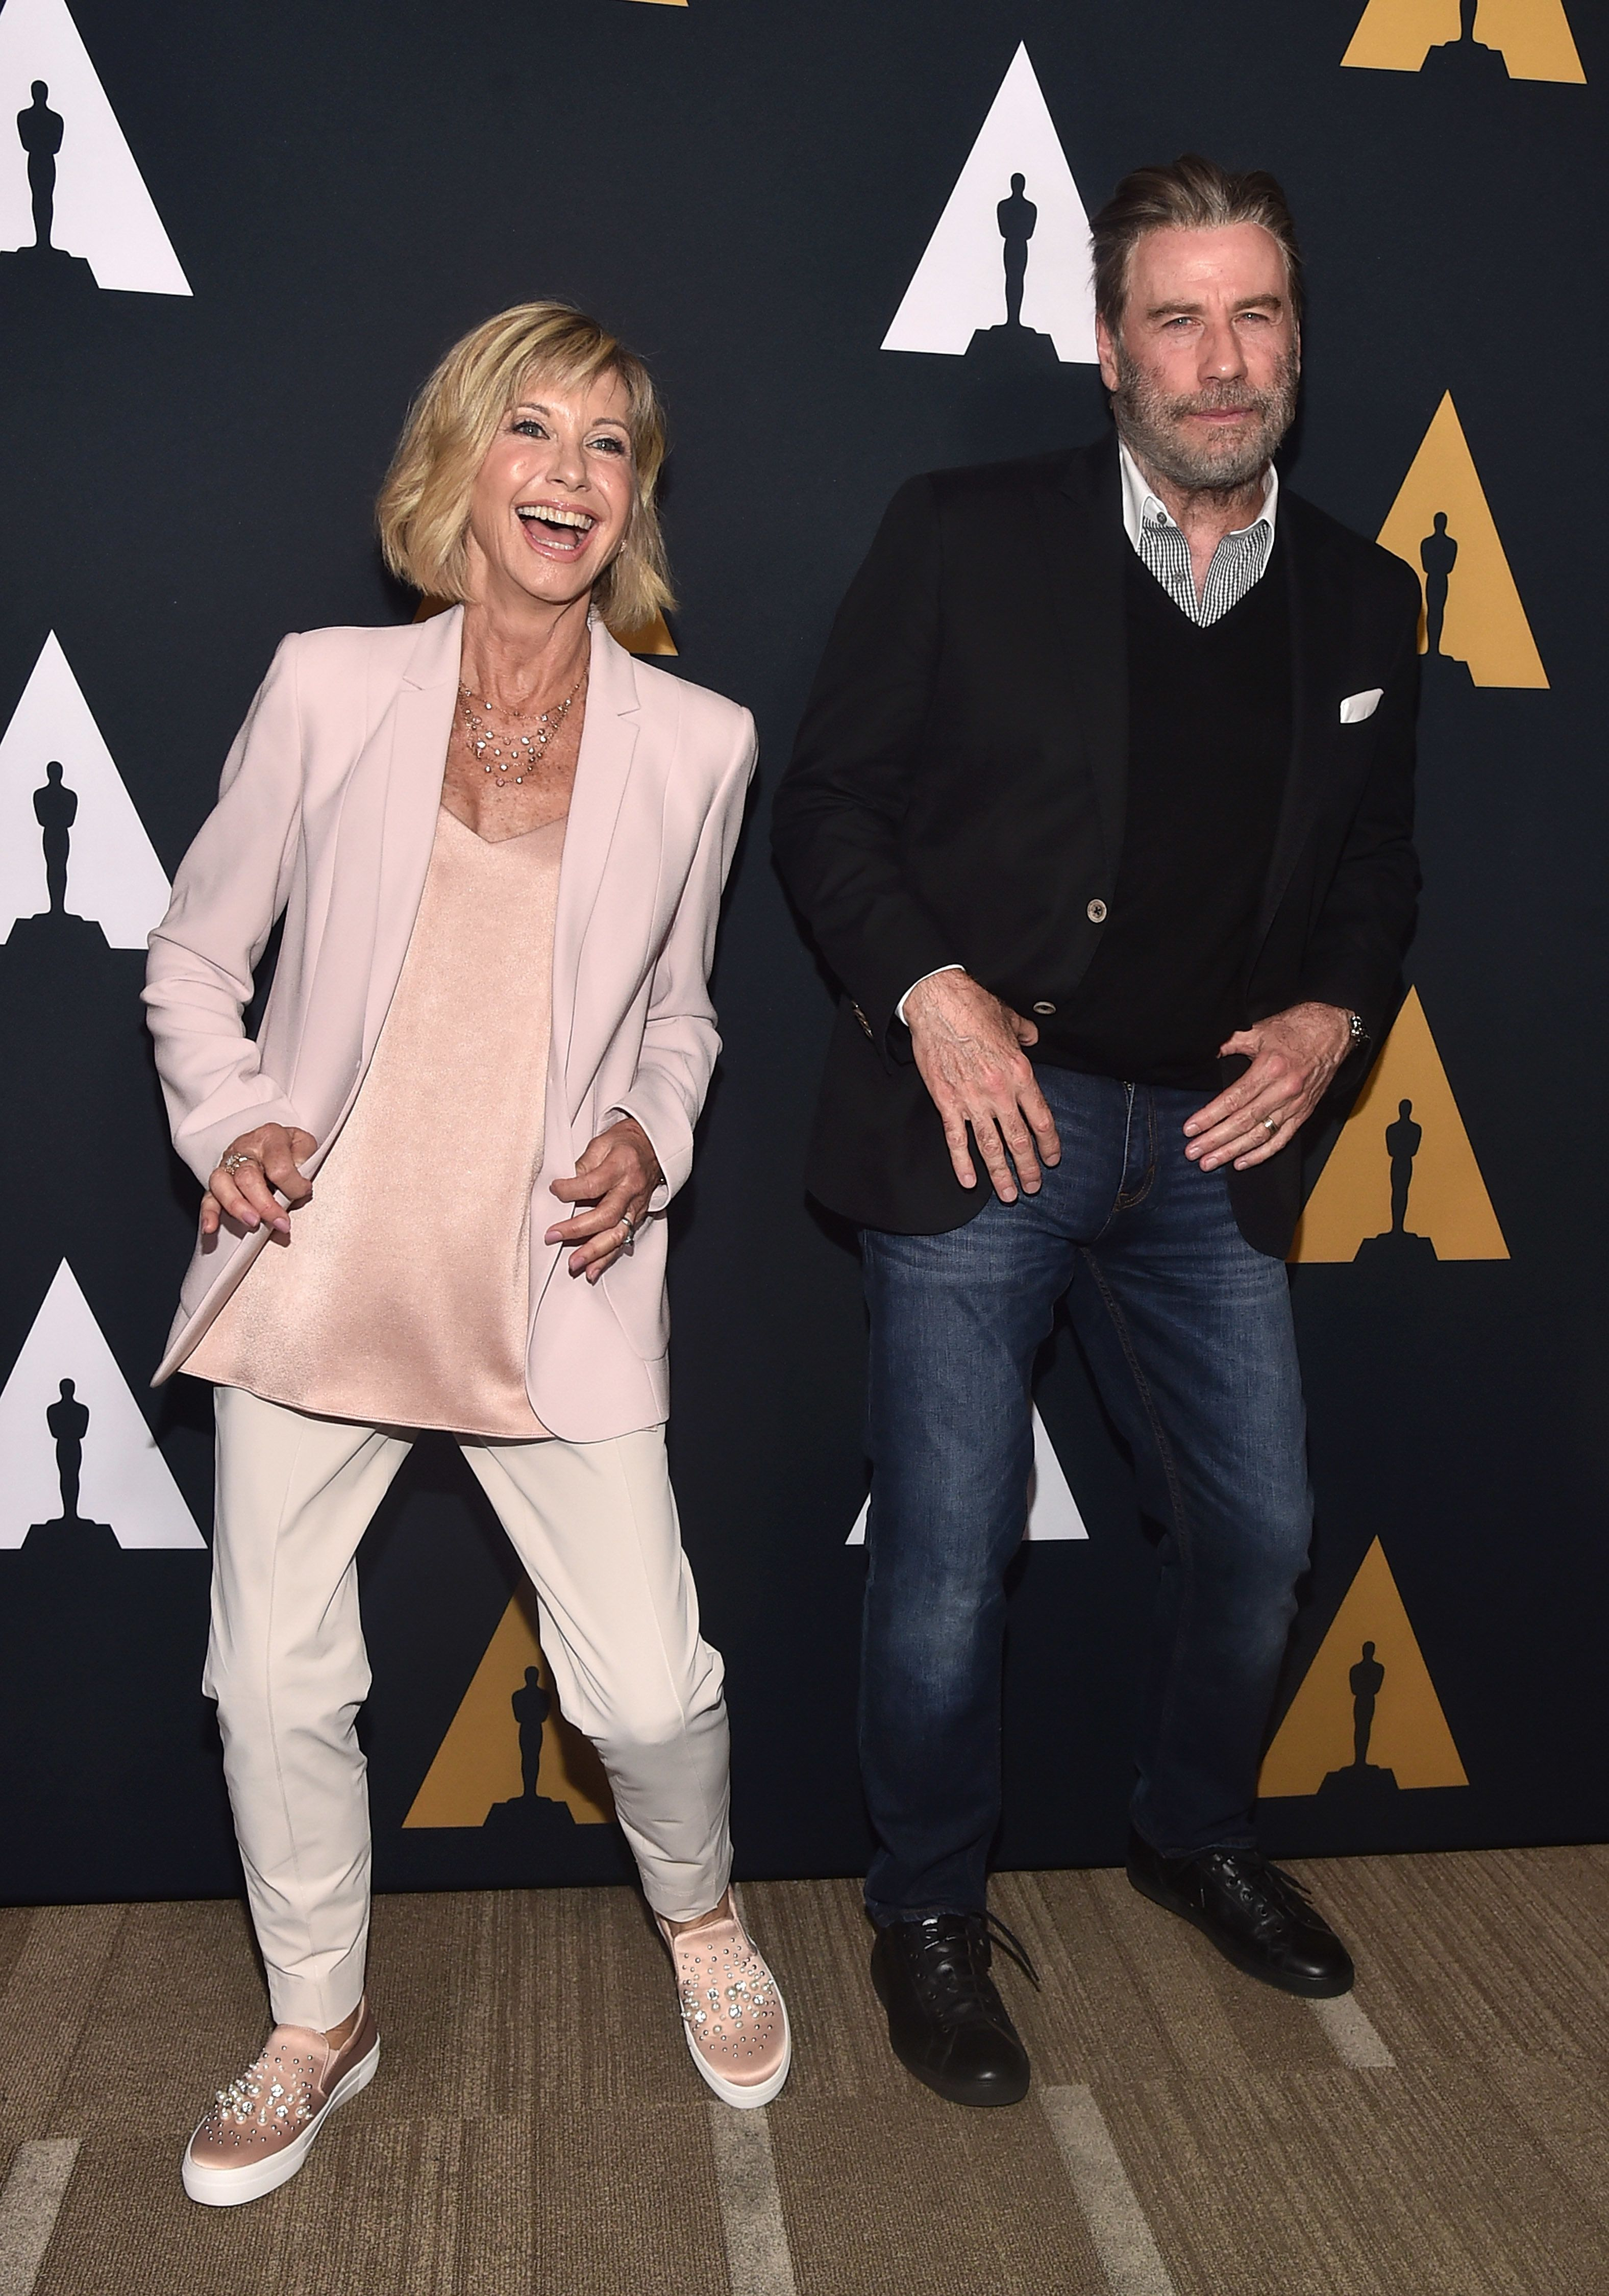 BEVERLY HILLS, CA - AUGUST 15:  Olivia Newton-John and John Travolta attend the Academy Presents 'Grease' (1978) 40th Anniversary at the Samuel Goldwyn Theater on August 15, 2018 in Beverly Hills, California.  (Photo by Alberto E. Rodriguez/Getty Images)